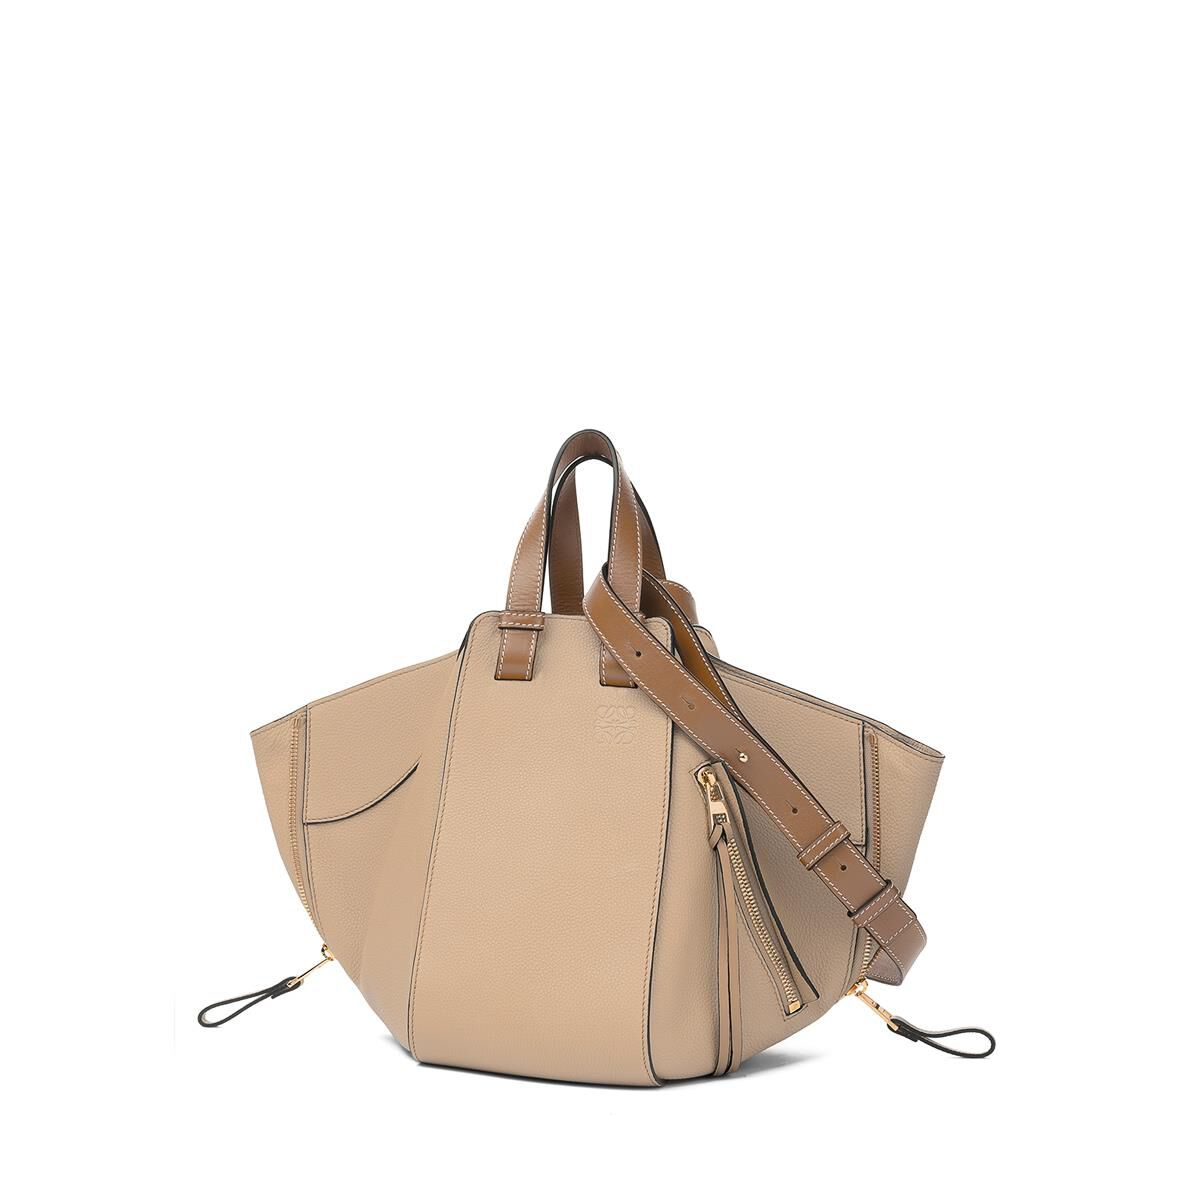 LOEWE Hammock Small Bag Sand/Mink Color all